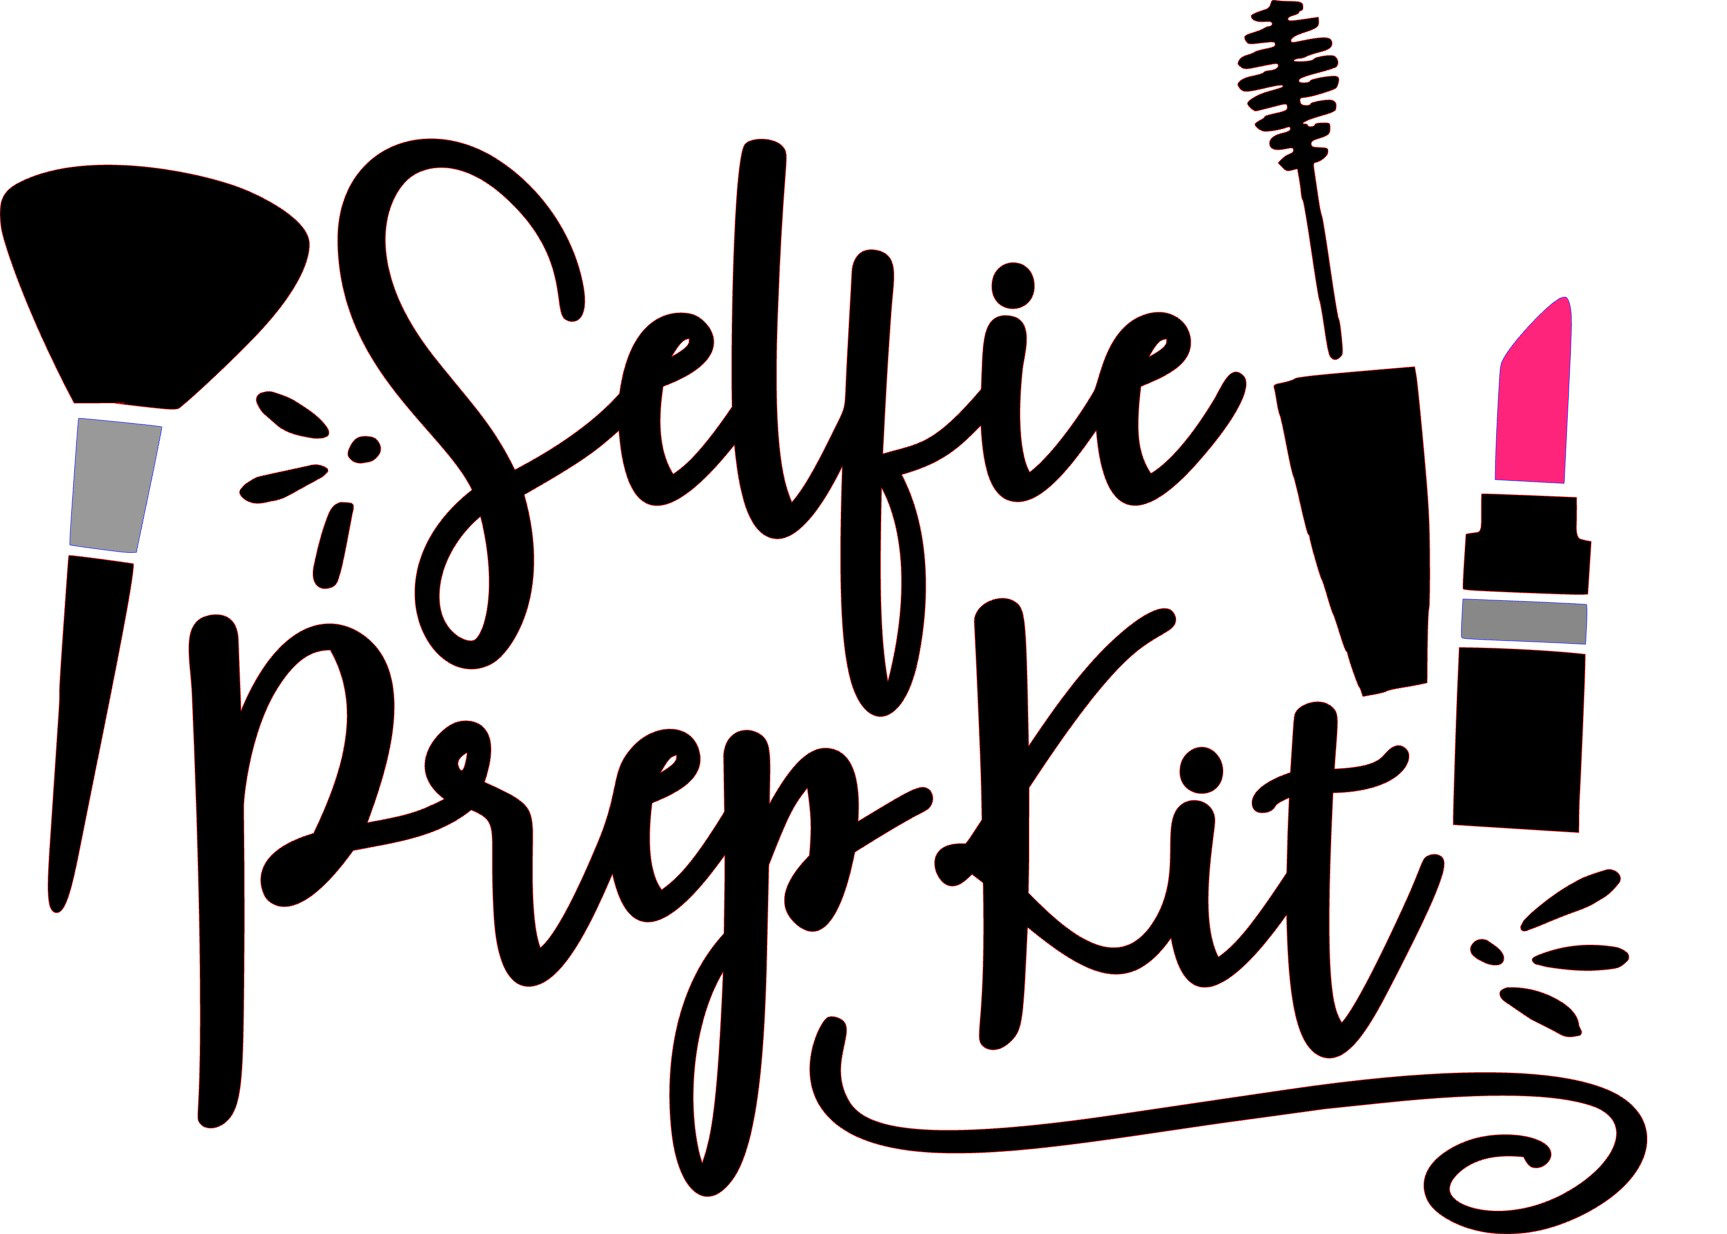 Download Free Selfie Prep Kit Graphic By Jlo Tirado Designs Creative Fabrica SVG Cut Files